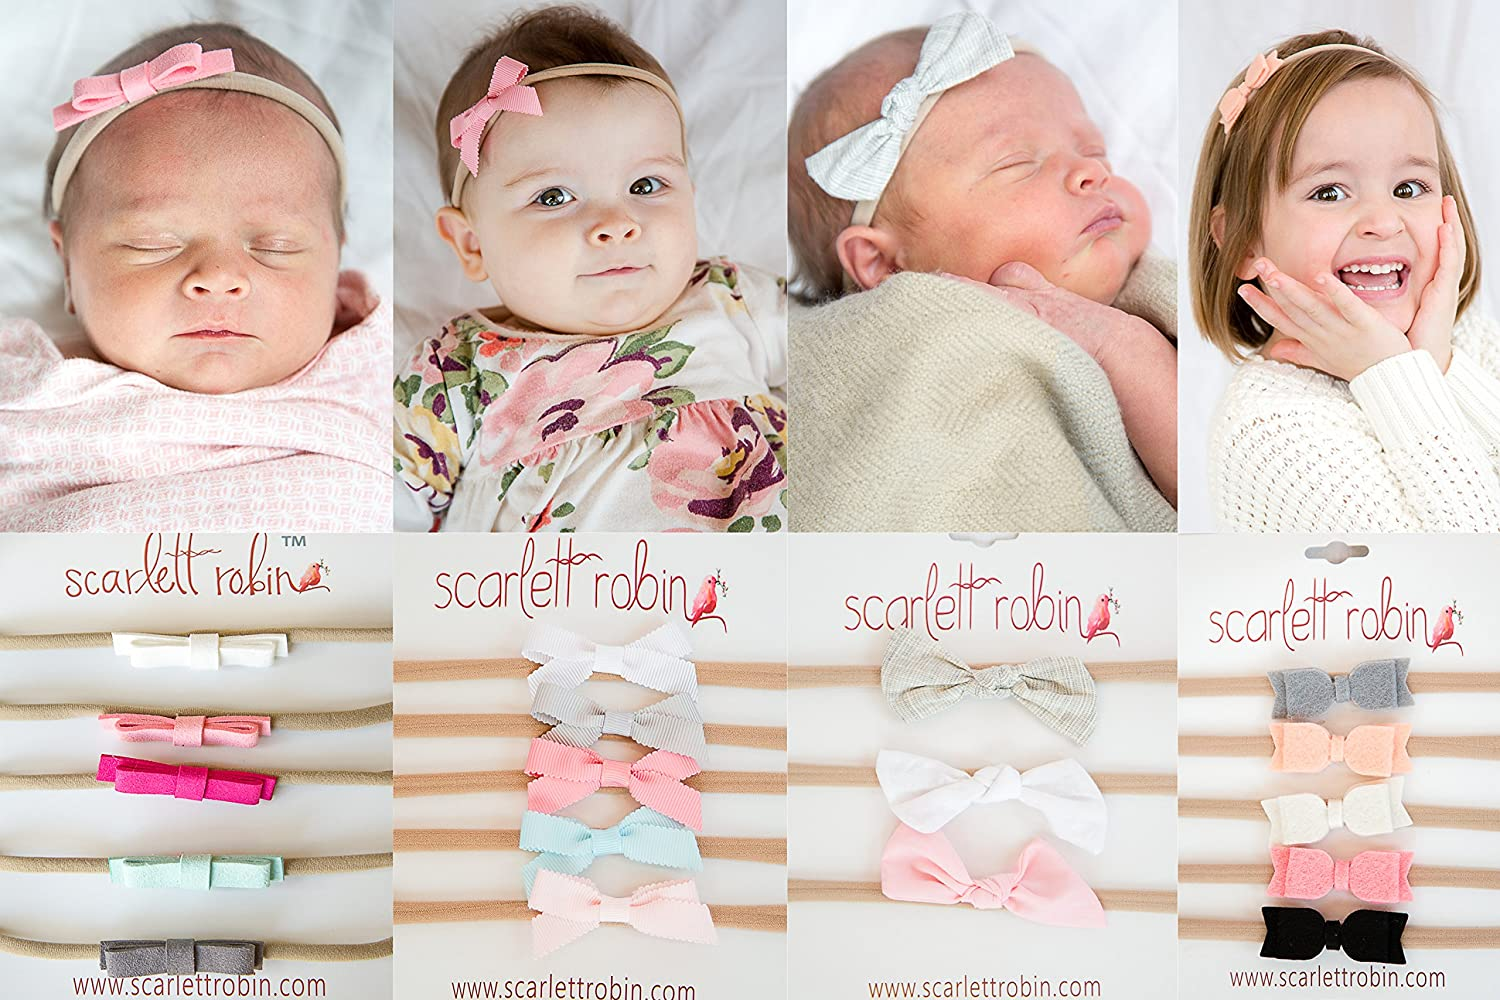 f8675cfd69641 18 Baby Girl Hair Bows on Nylon Headbands | Sweet Starter Pack | By  Scarlett Robin